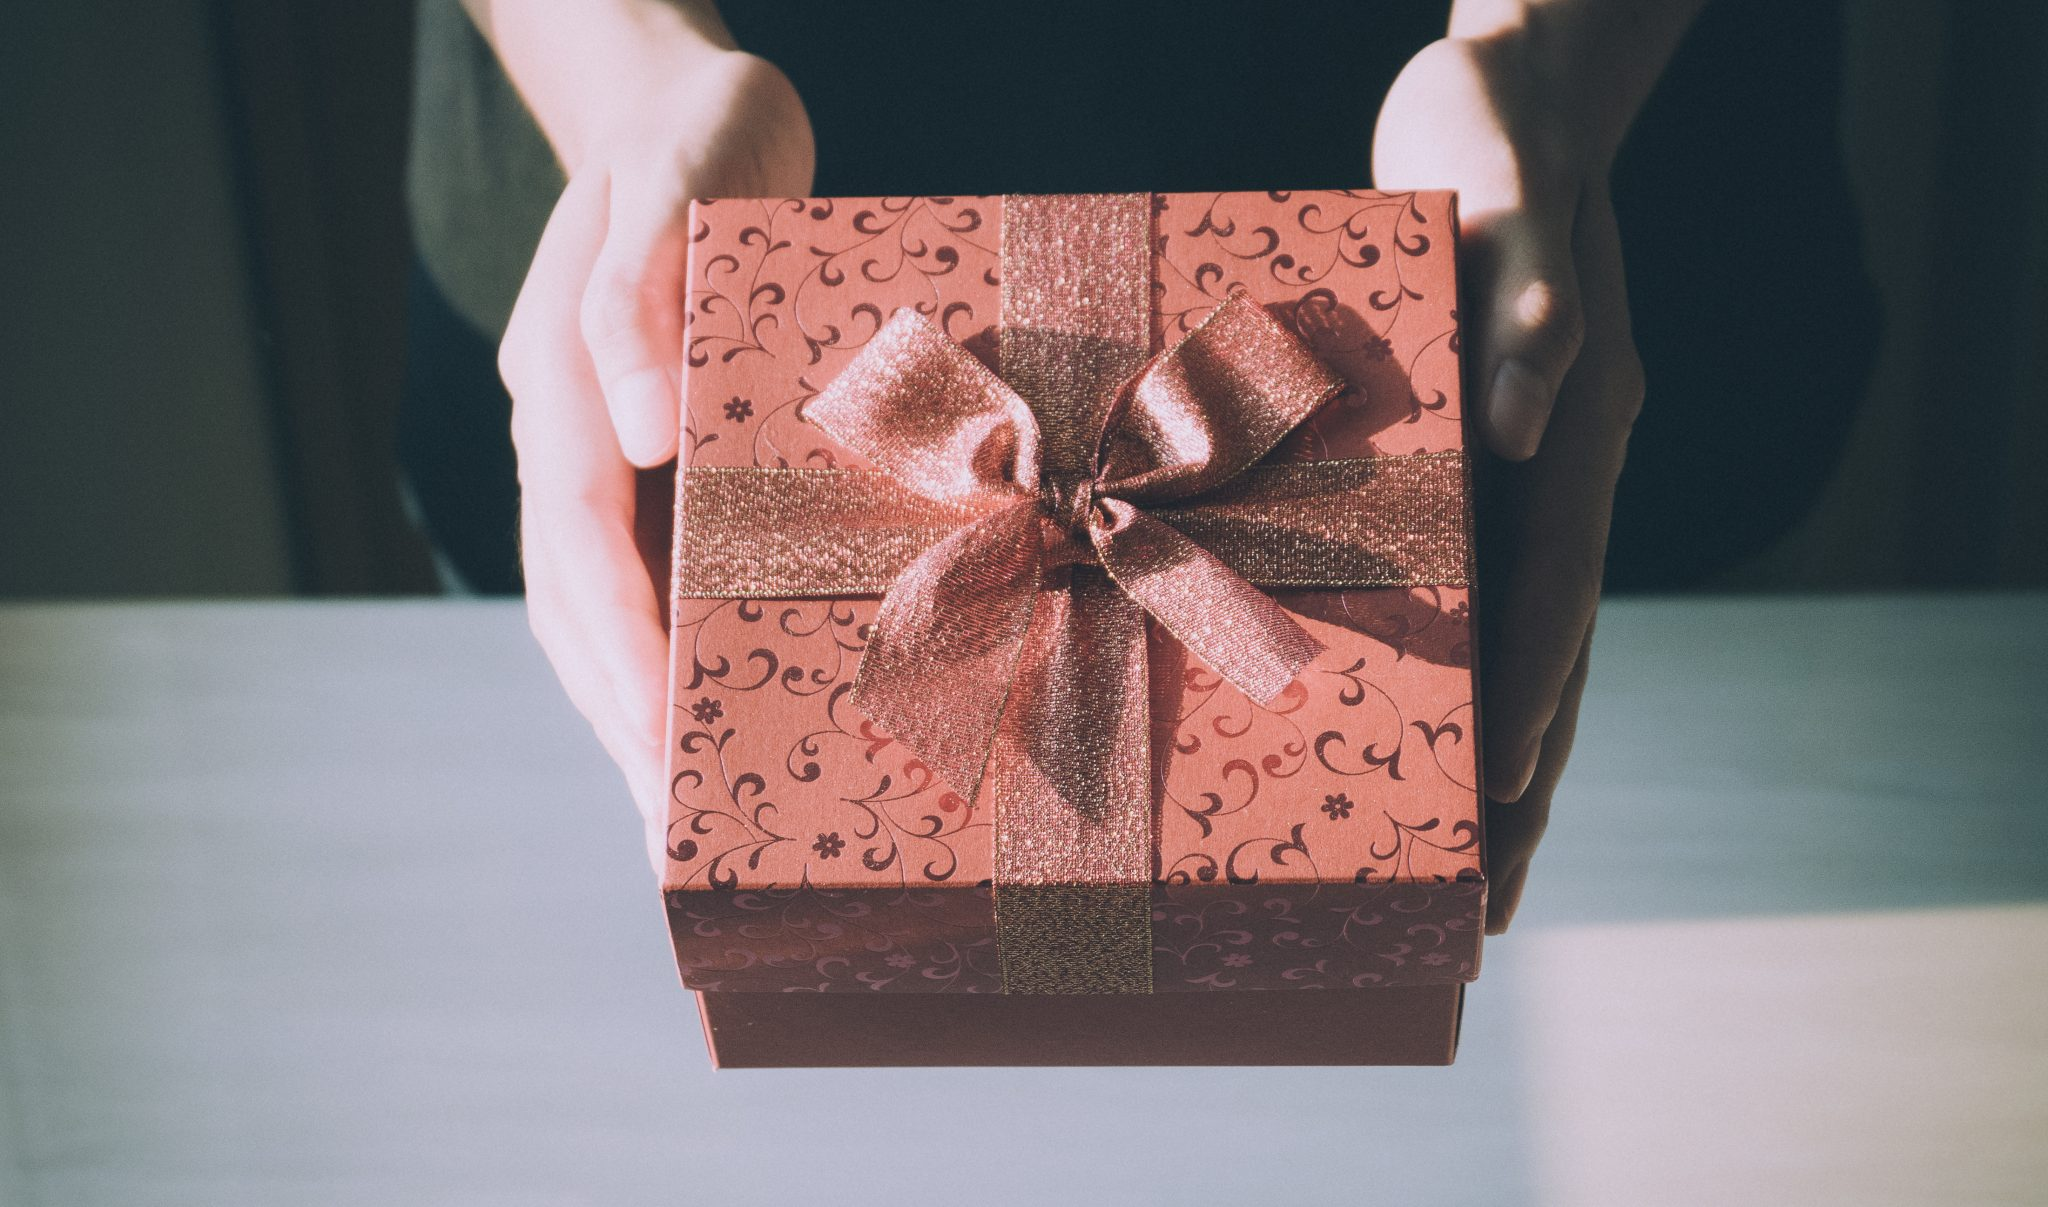 The most thoughtful gifts you can give on a tightbudget